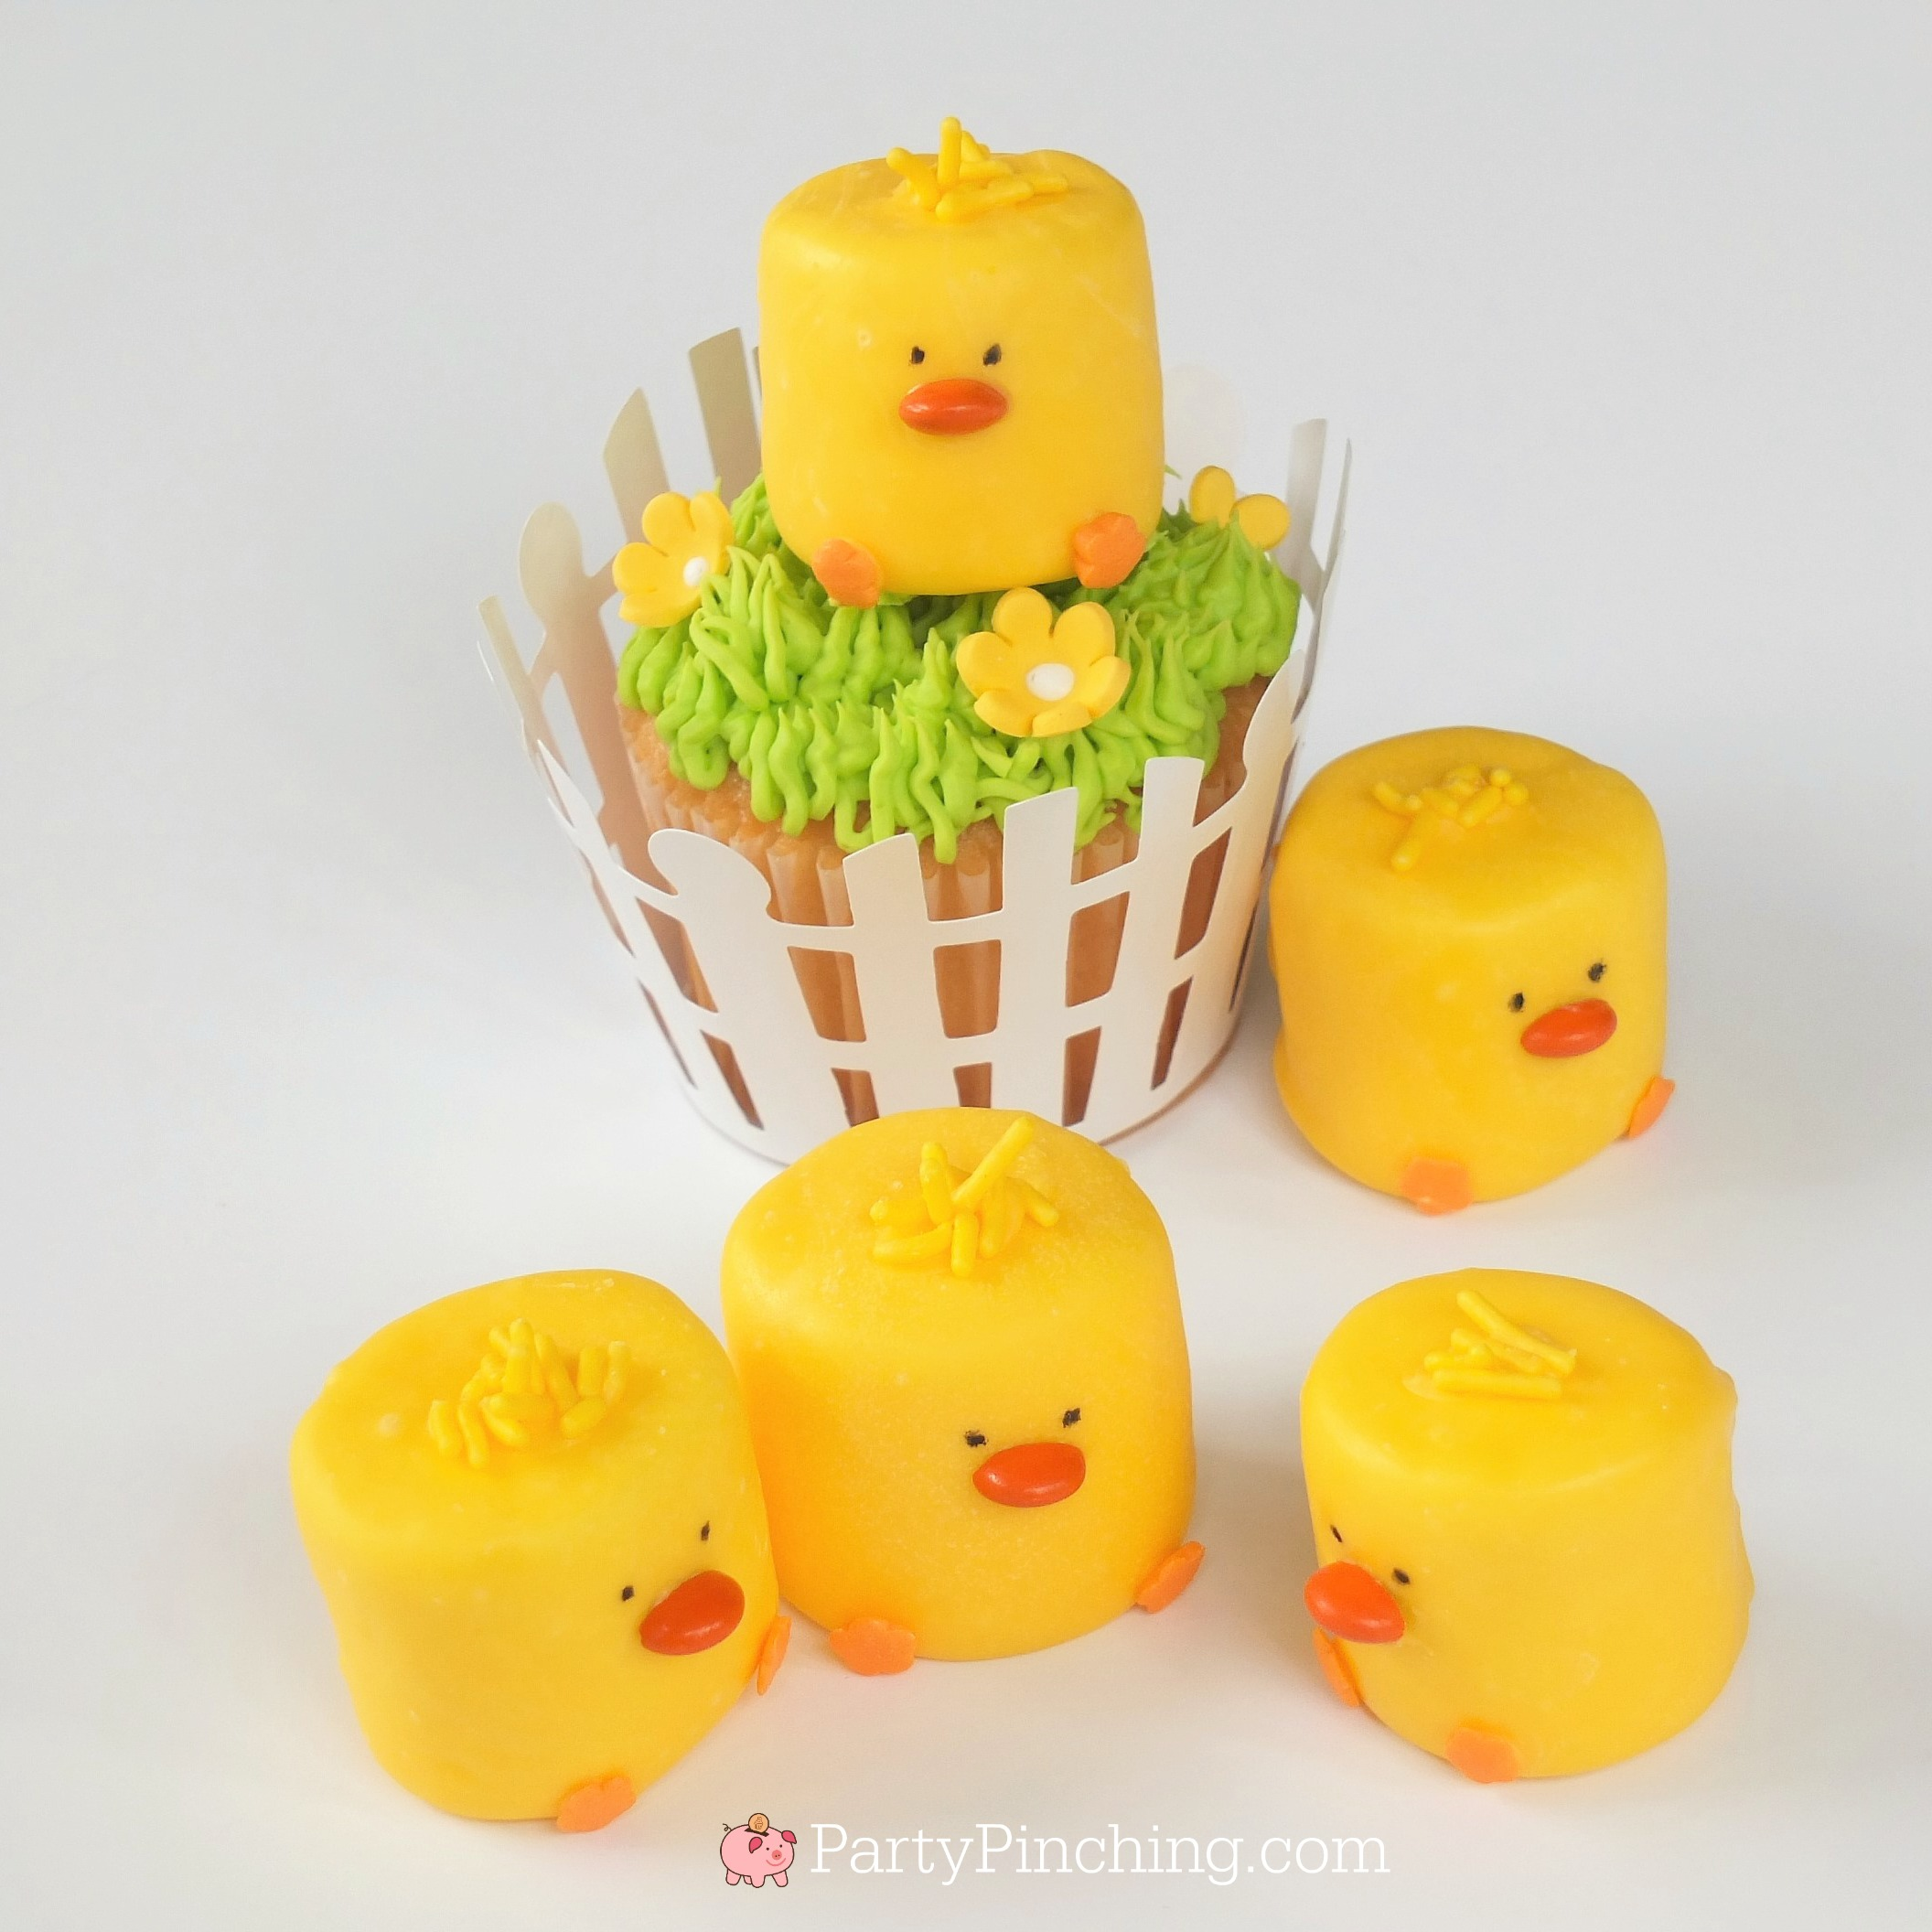 cute marshmallow chicks for Easter or spring, chick cupcake topper, chick on a stick, chick pops, cute and easy Easter dessert kids will love to make